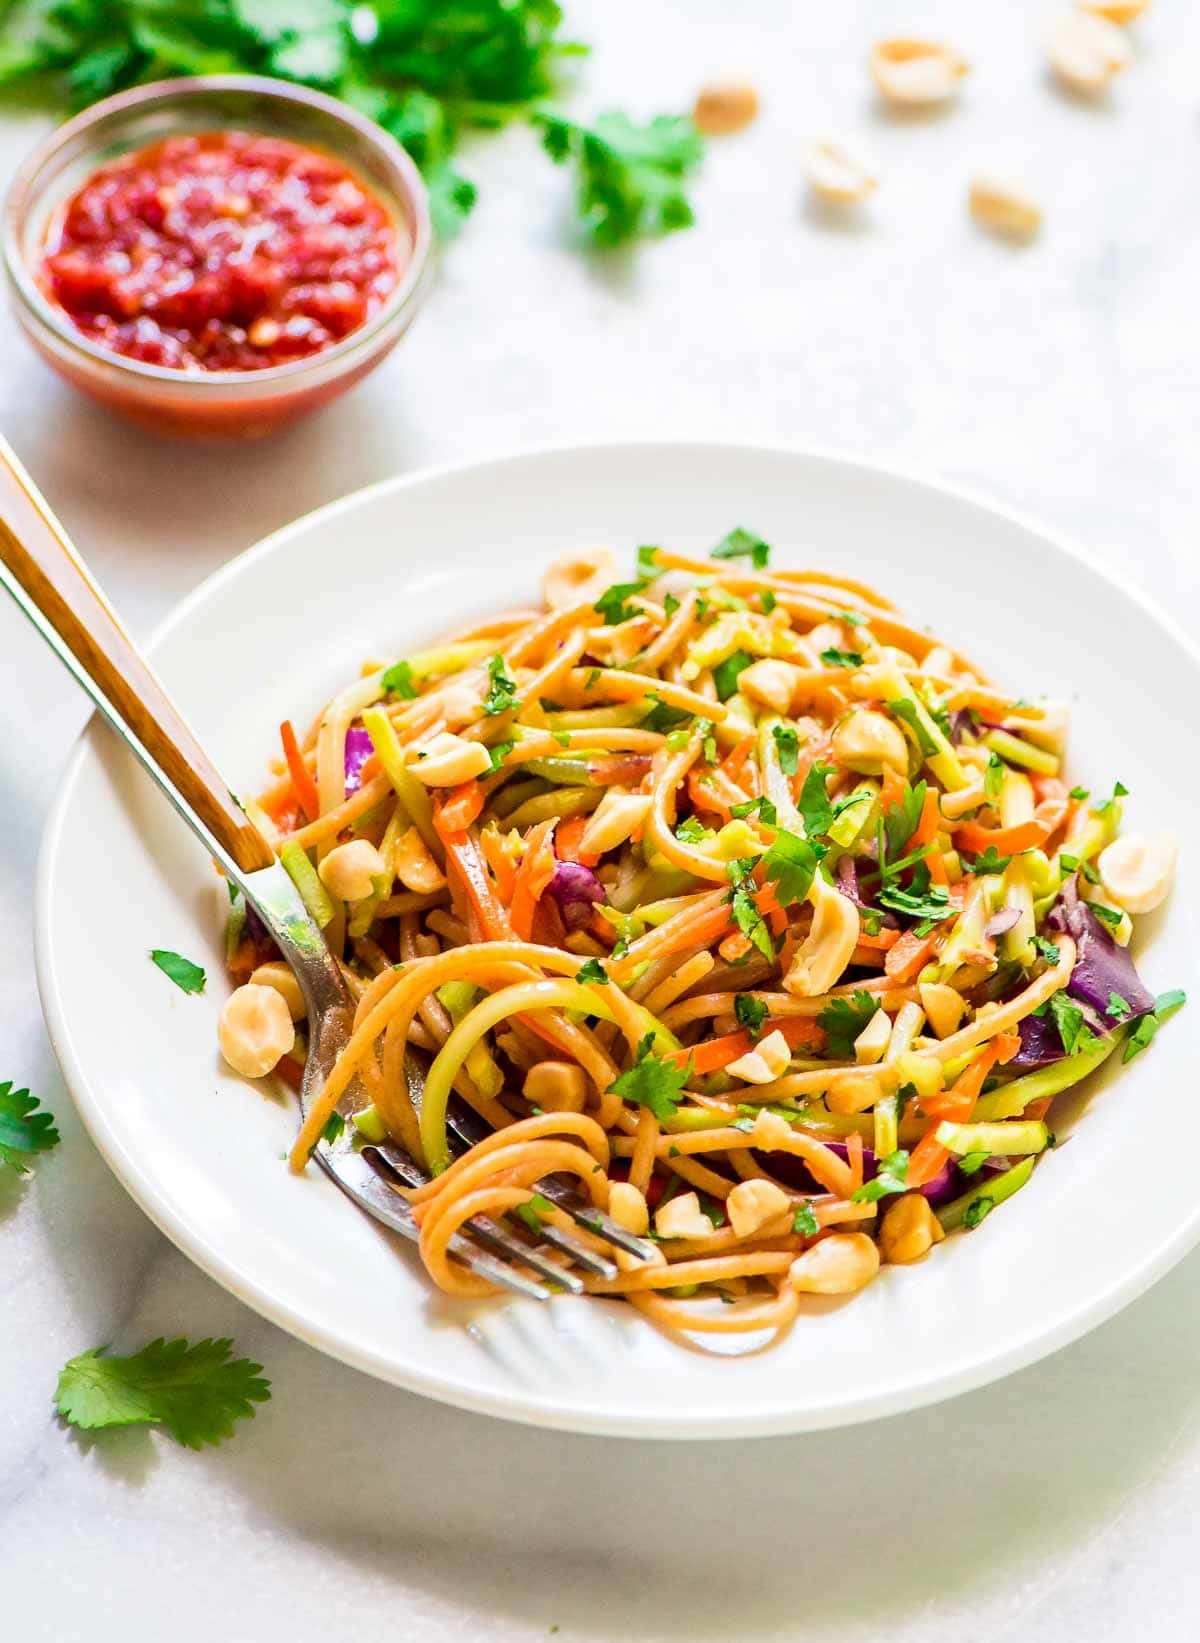 Healthy Pasta Noodles  Asian Noodle Salad with Creamy Peanut Dressing